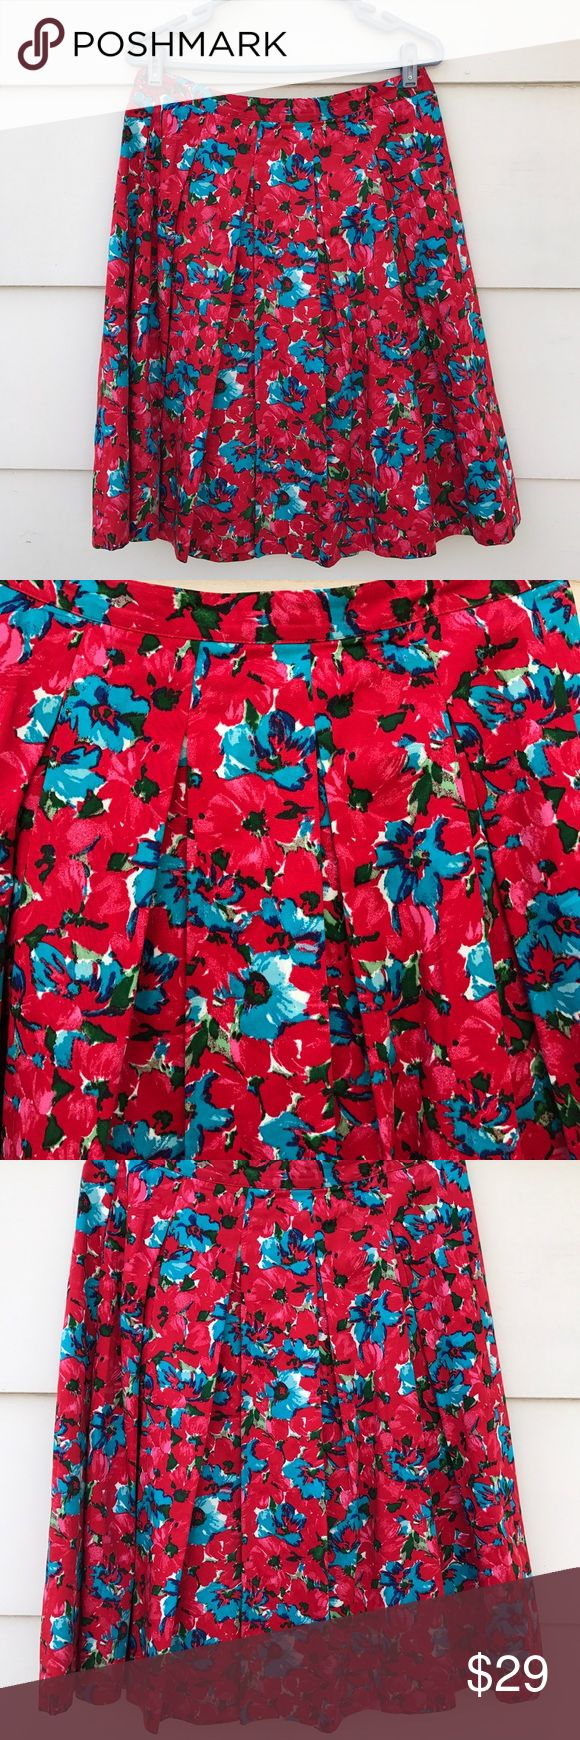 """Talbots Women's Career Floral Pleated Midi Skirt Lovely Talbots women's career red floral midi skirt Size 6 back zipper lined and pleated. Condition. New with tag. Measurements. waist 32"""" hip 40"""" overall length 25"""" Materials. shell 97% cotton 3% elastane 100% lining. Talbots Skirts Midi"""